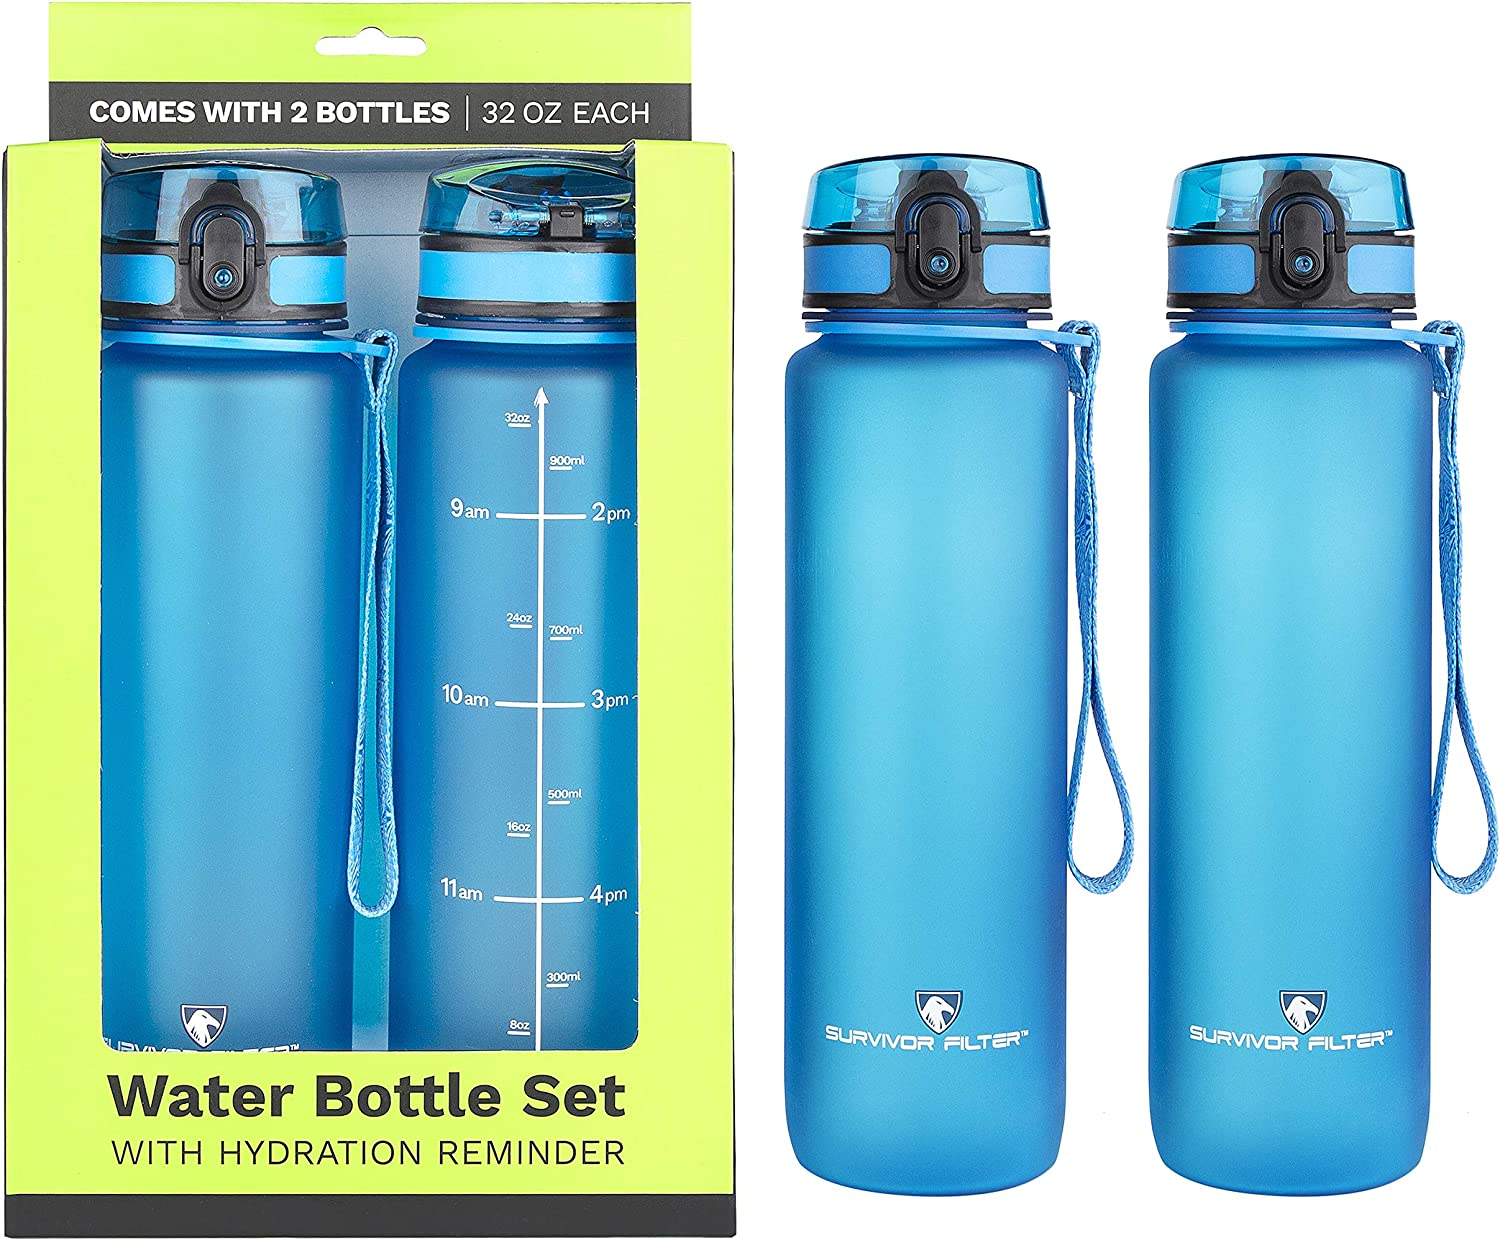 Survivor Sports Water Bottles 32oz – 2 Bottle Set 2 Liters Total Note Not a Water Filter with Leakproof Quick-Lock Lids, Hydration Reminder and Convenient Carry Straps – BPA Free